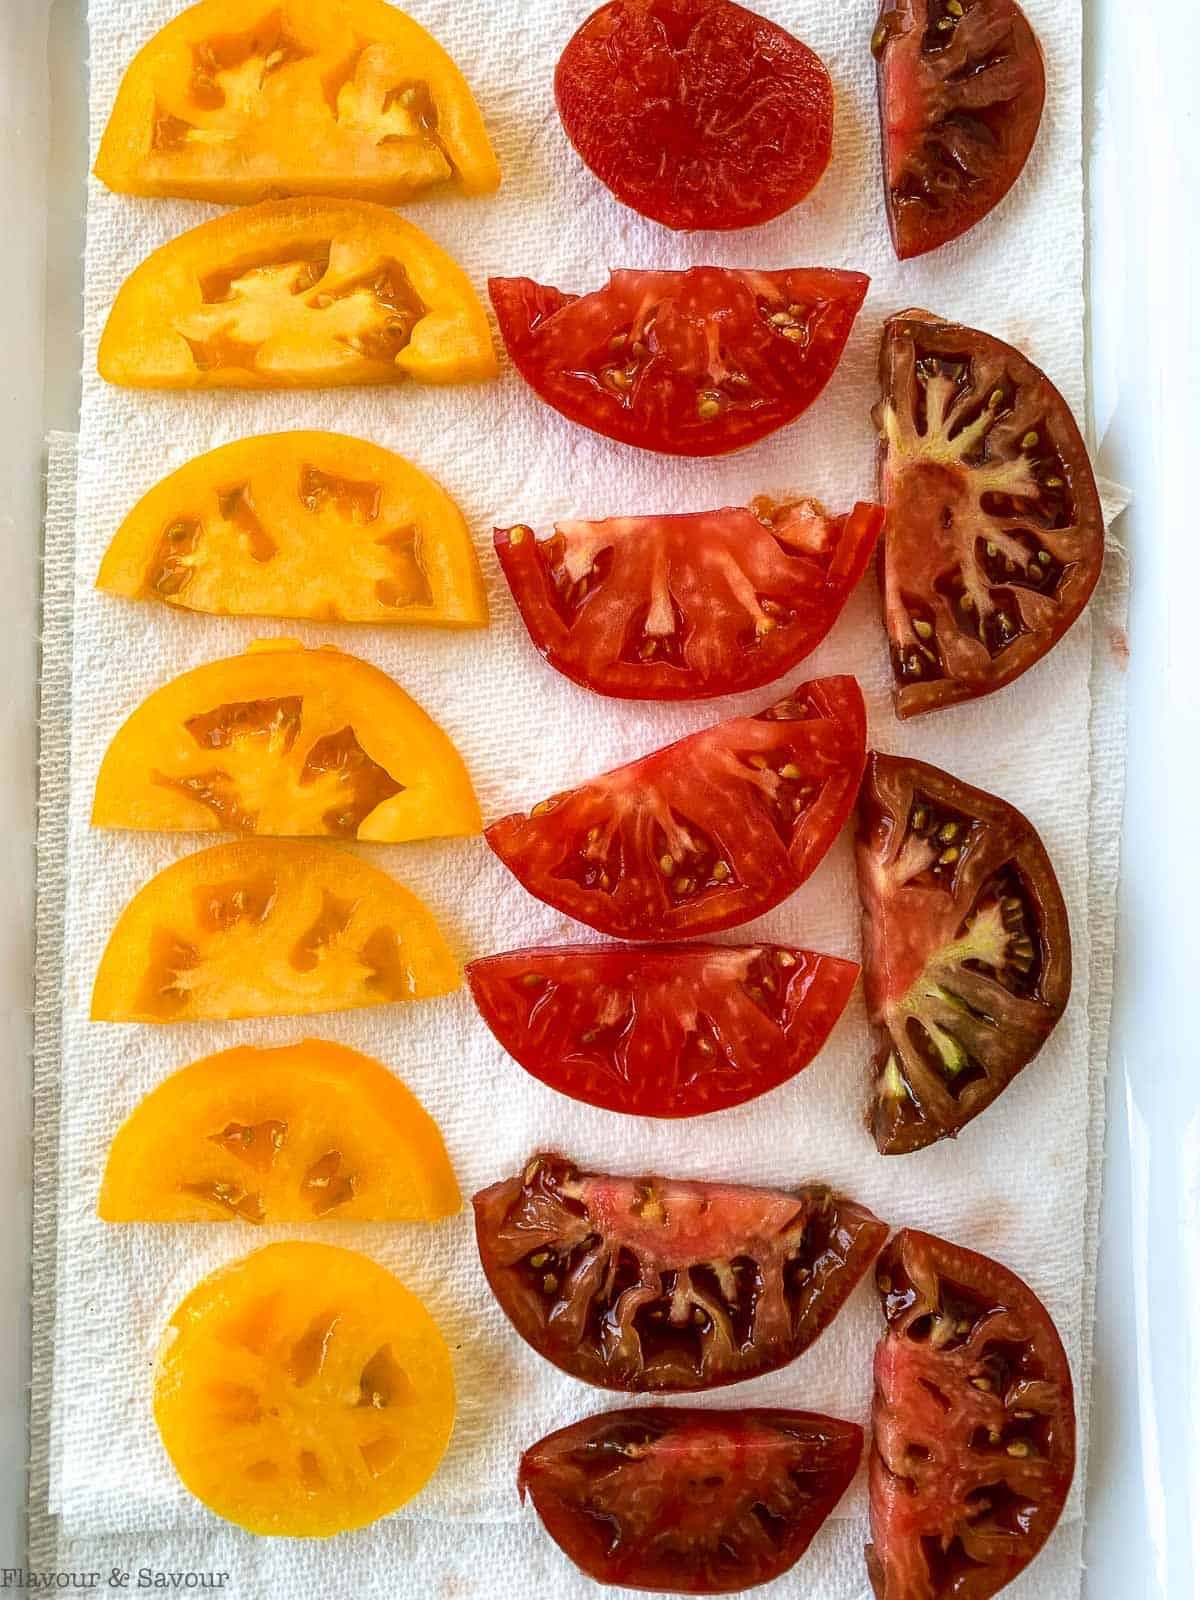 Draining tomatoes on paper towel